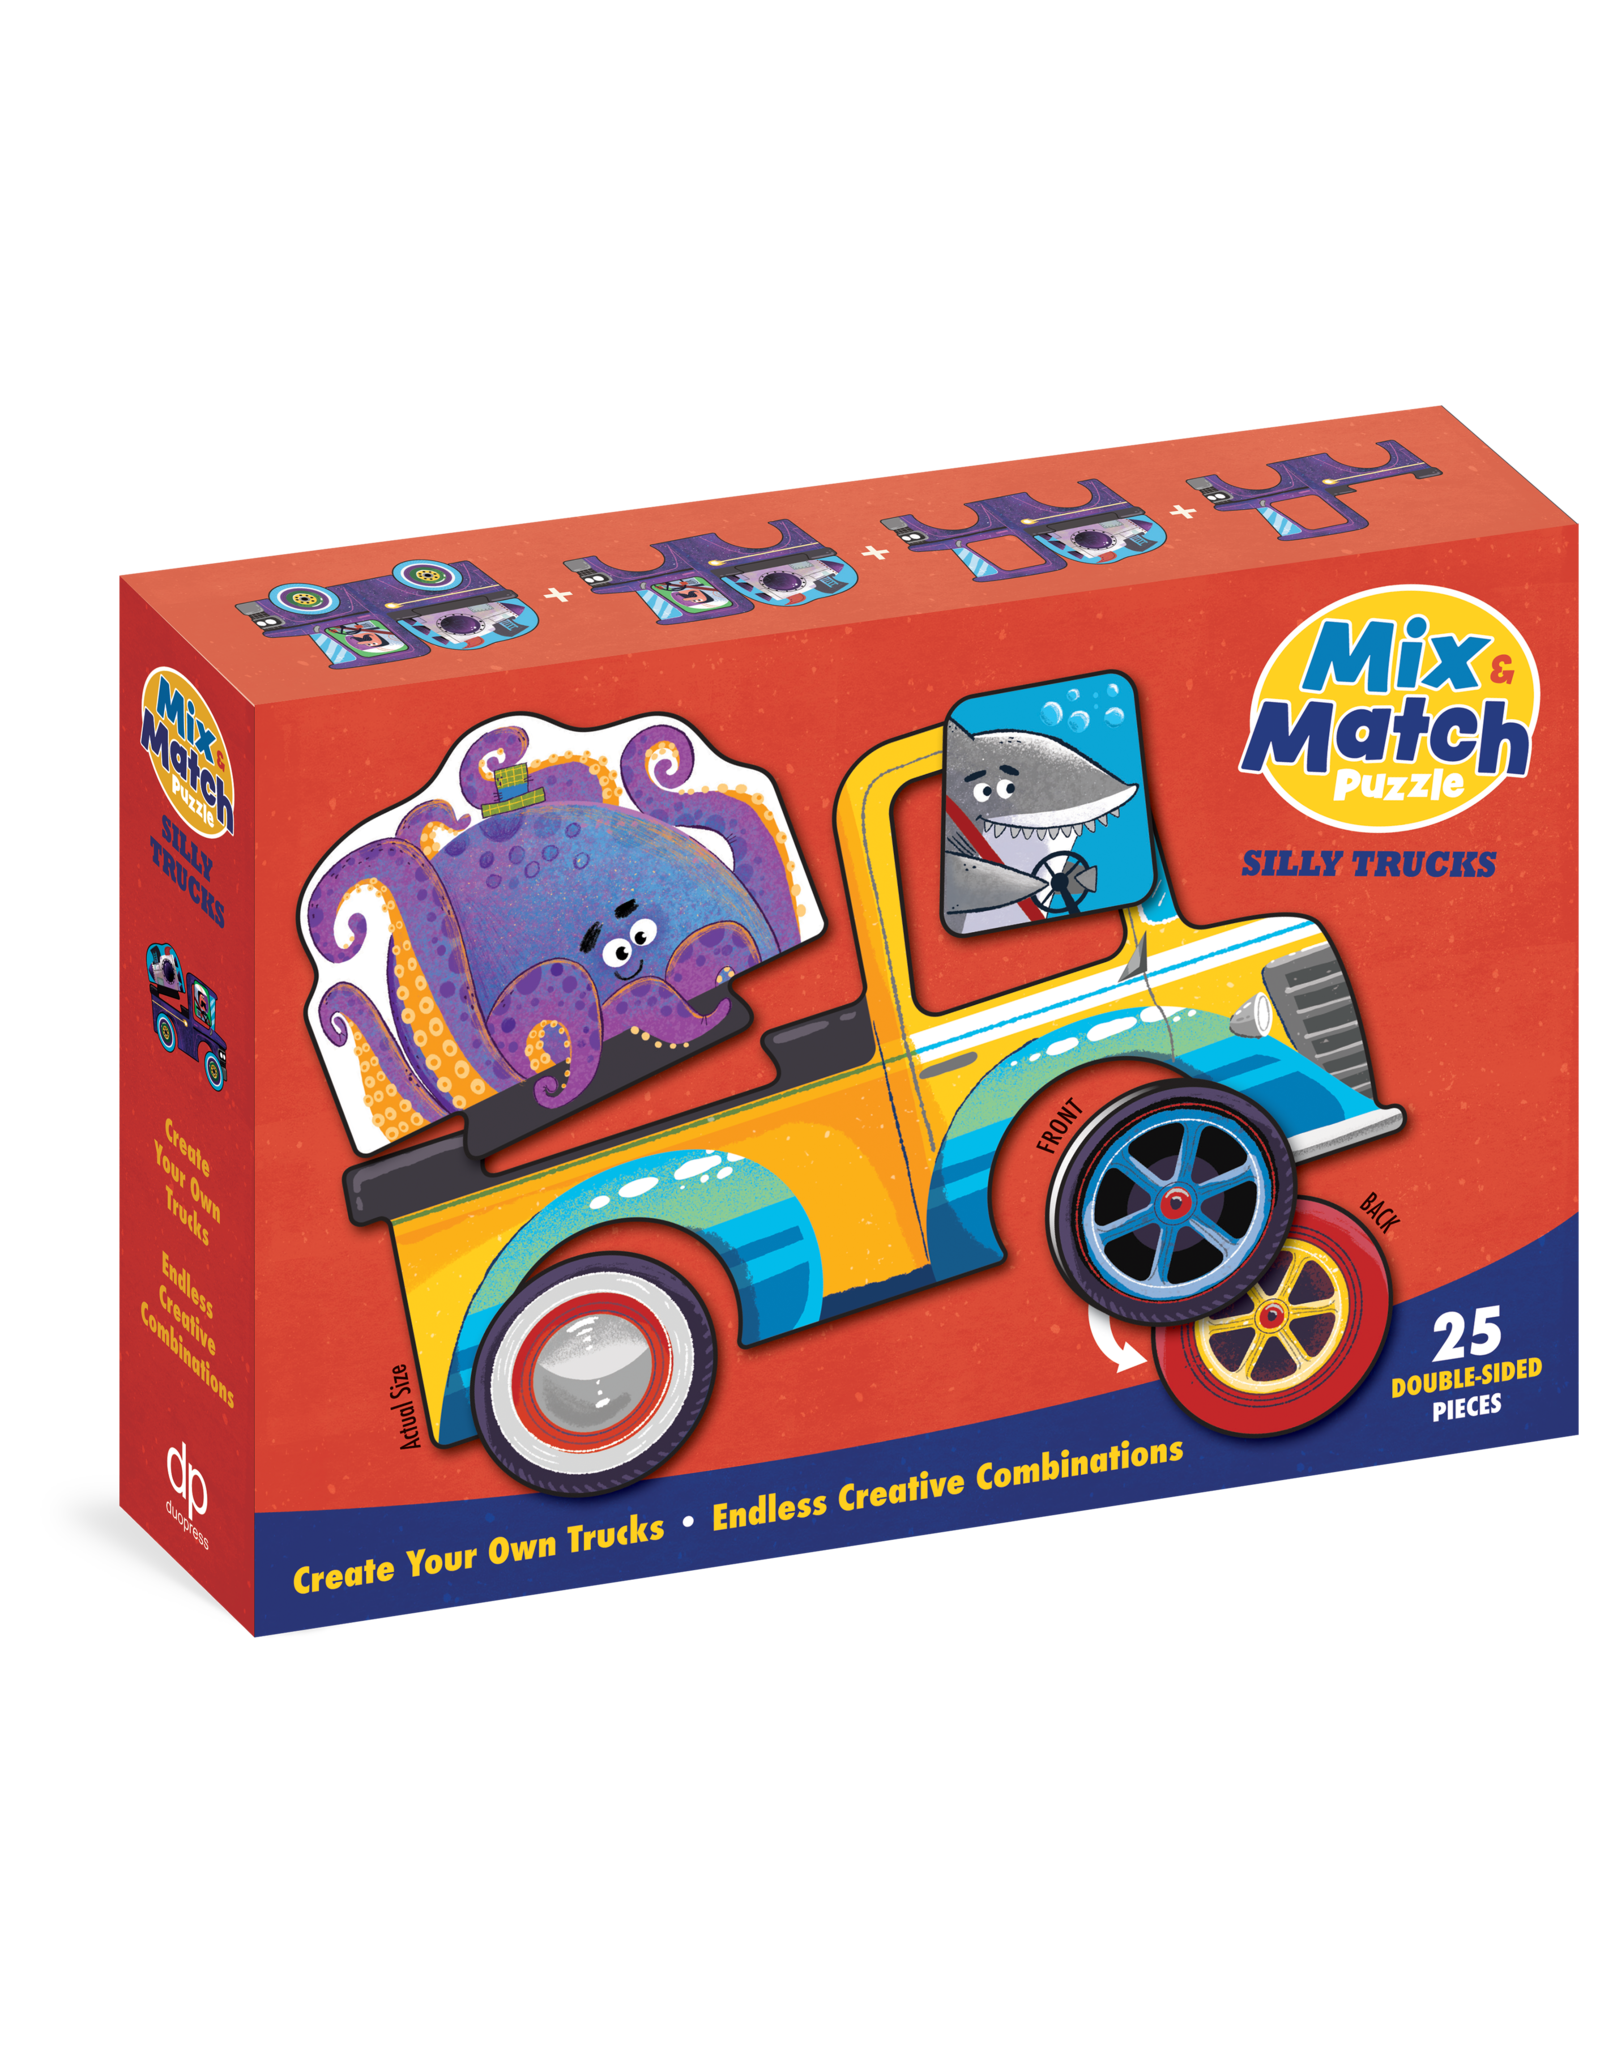 Mix and Match: Silly Trucks 25 pc Double-Sided